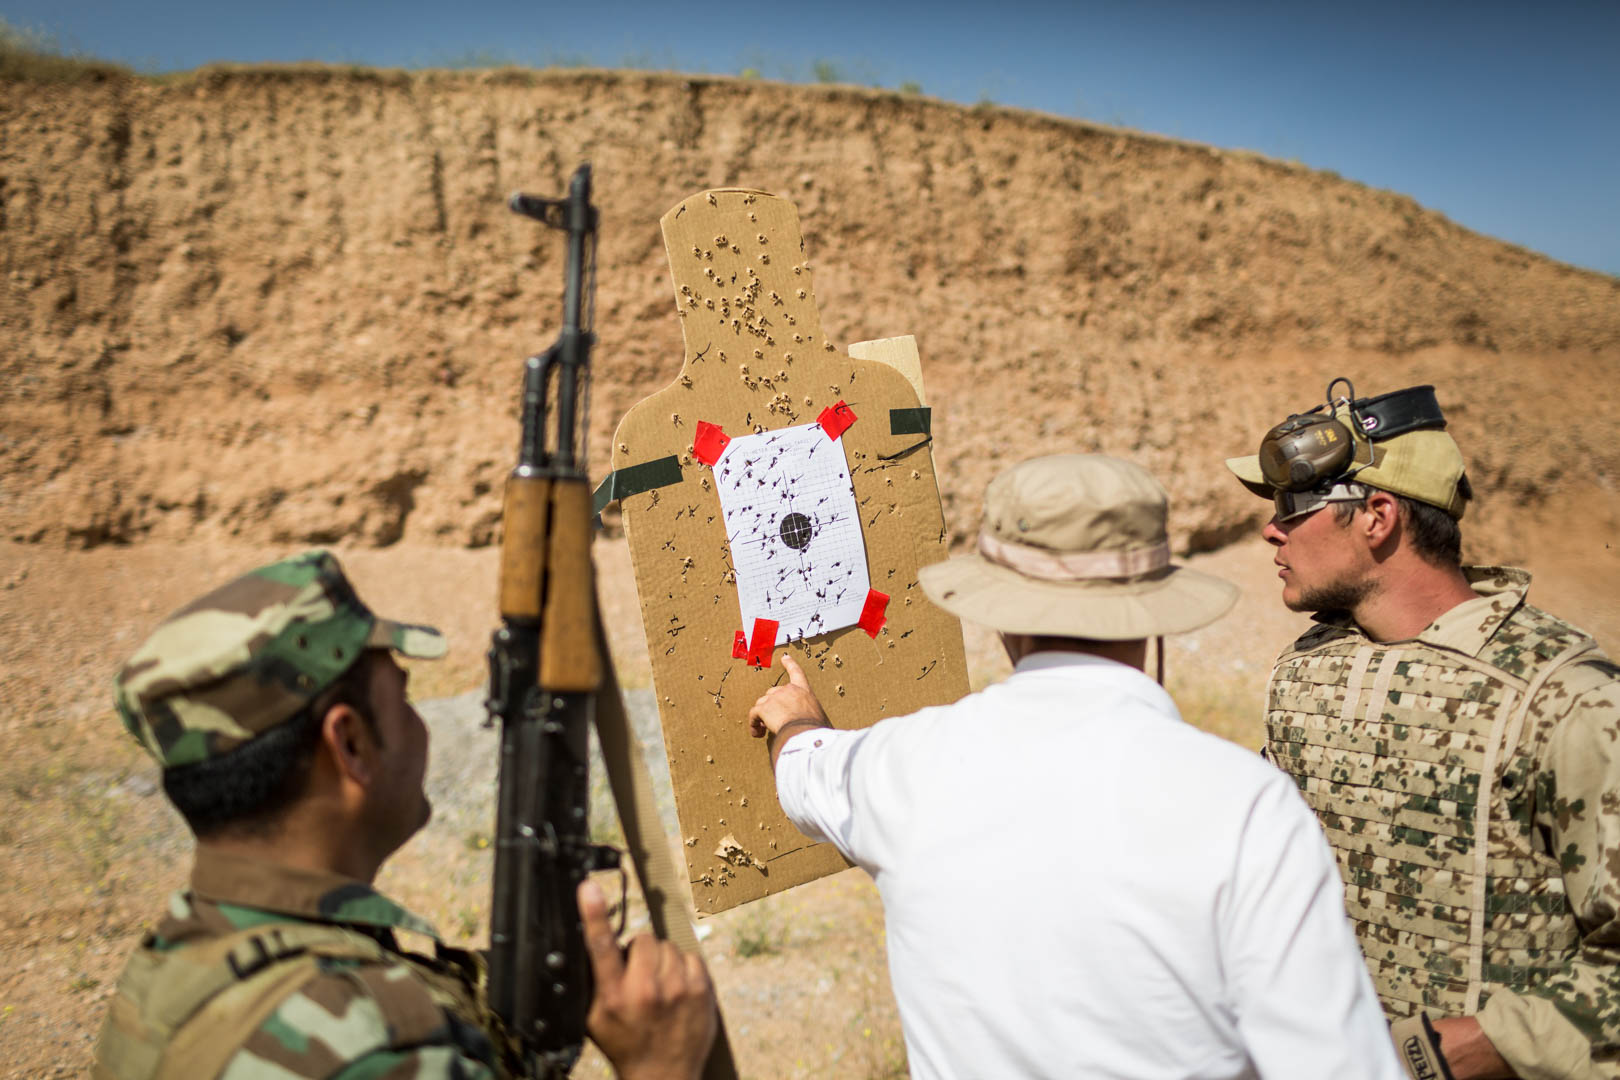 A Peshmerga soldier and his German military adviser are discussing his performance results at the shooting range.